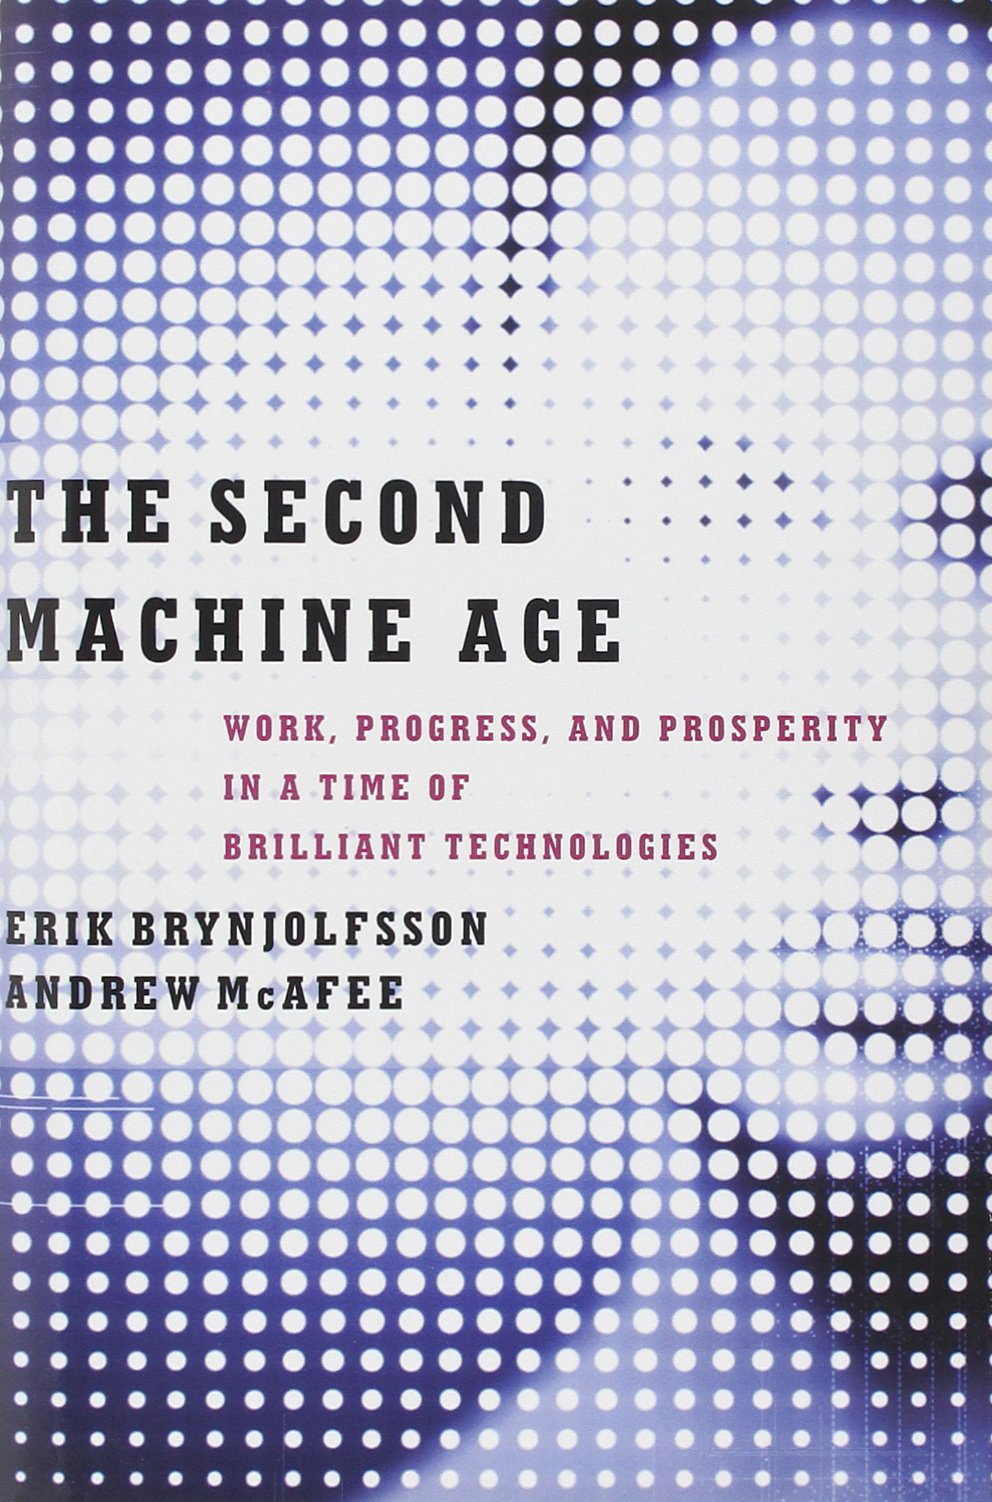 The Second Machine Age: Work, Progress, and Prosperity in a Time of Brilliant Technologies ISBN-13 9780393239355